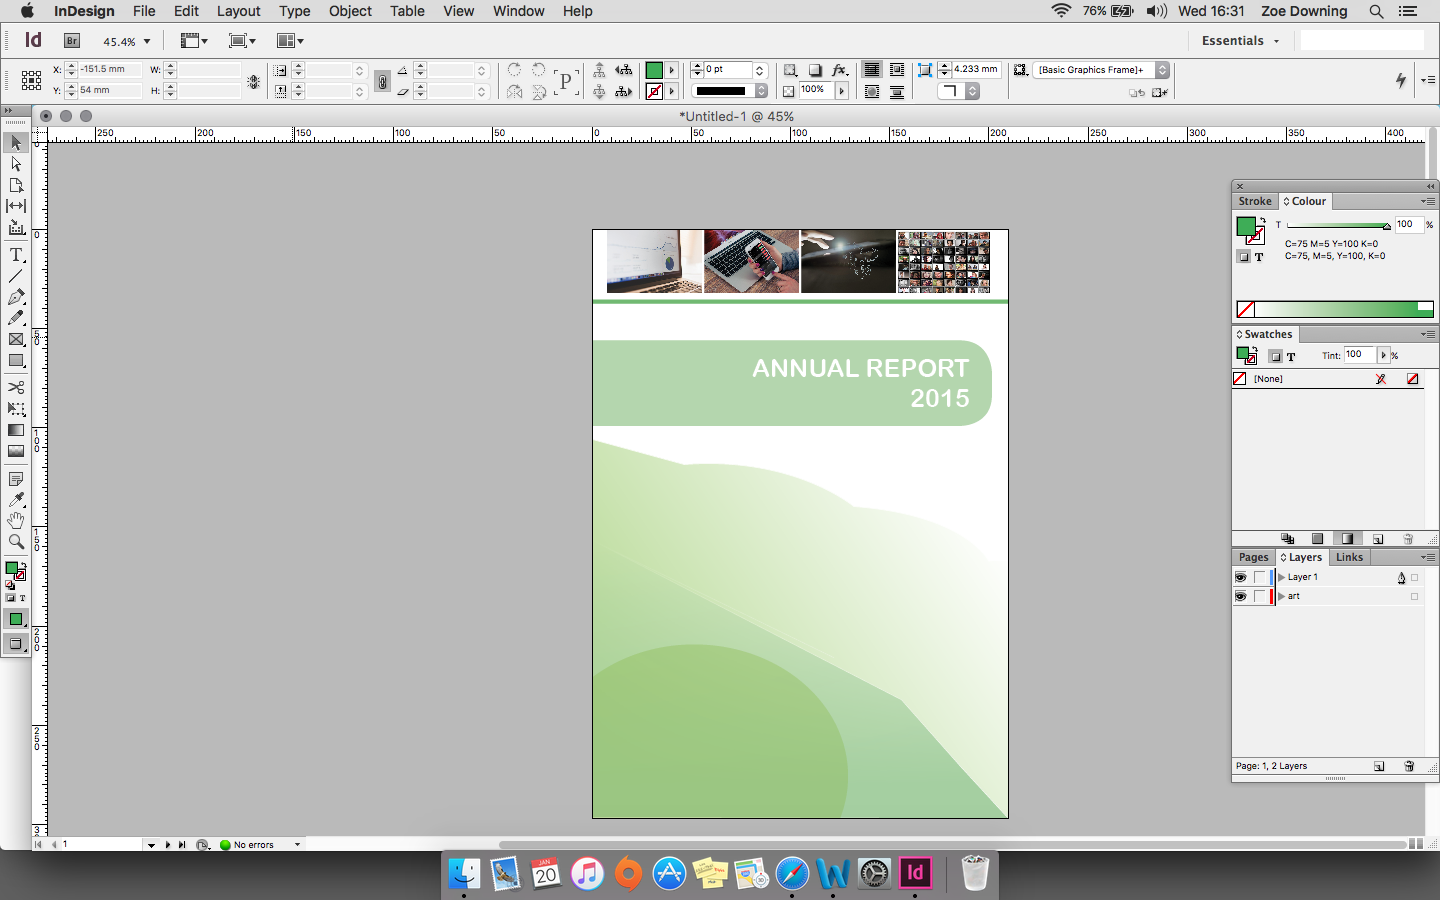 how to duplicate a document in indesign